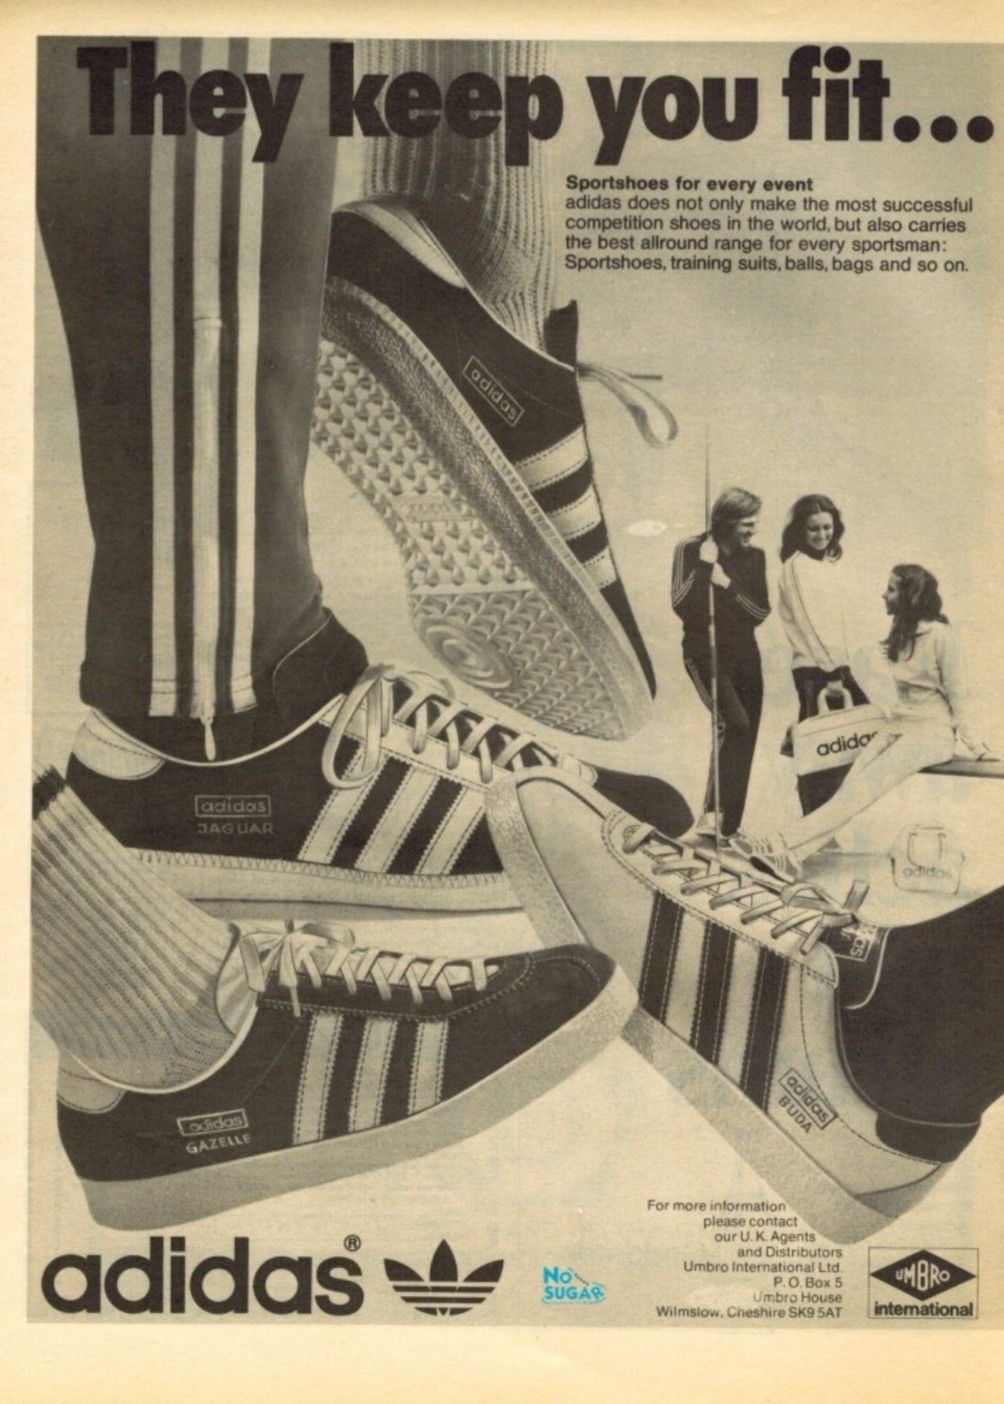 9e309f5e9a85 Wonderful Adidas period advertising from the 70 s showing Gazelles ...